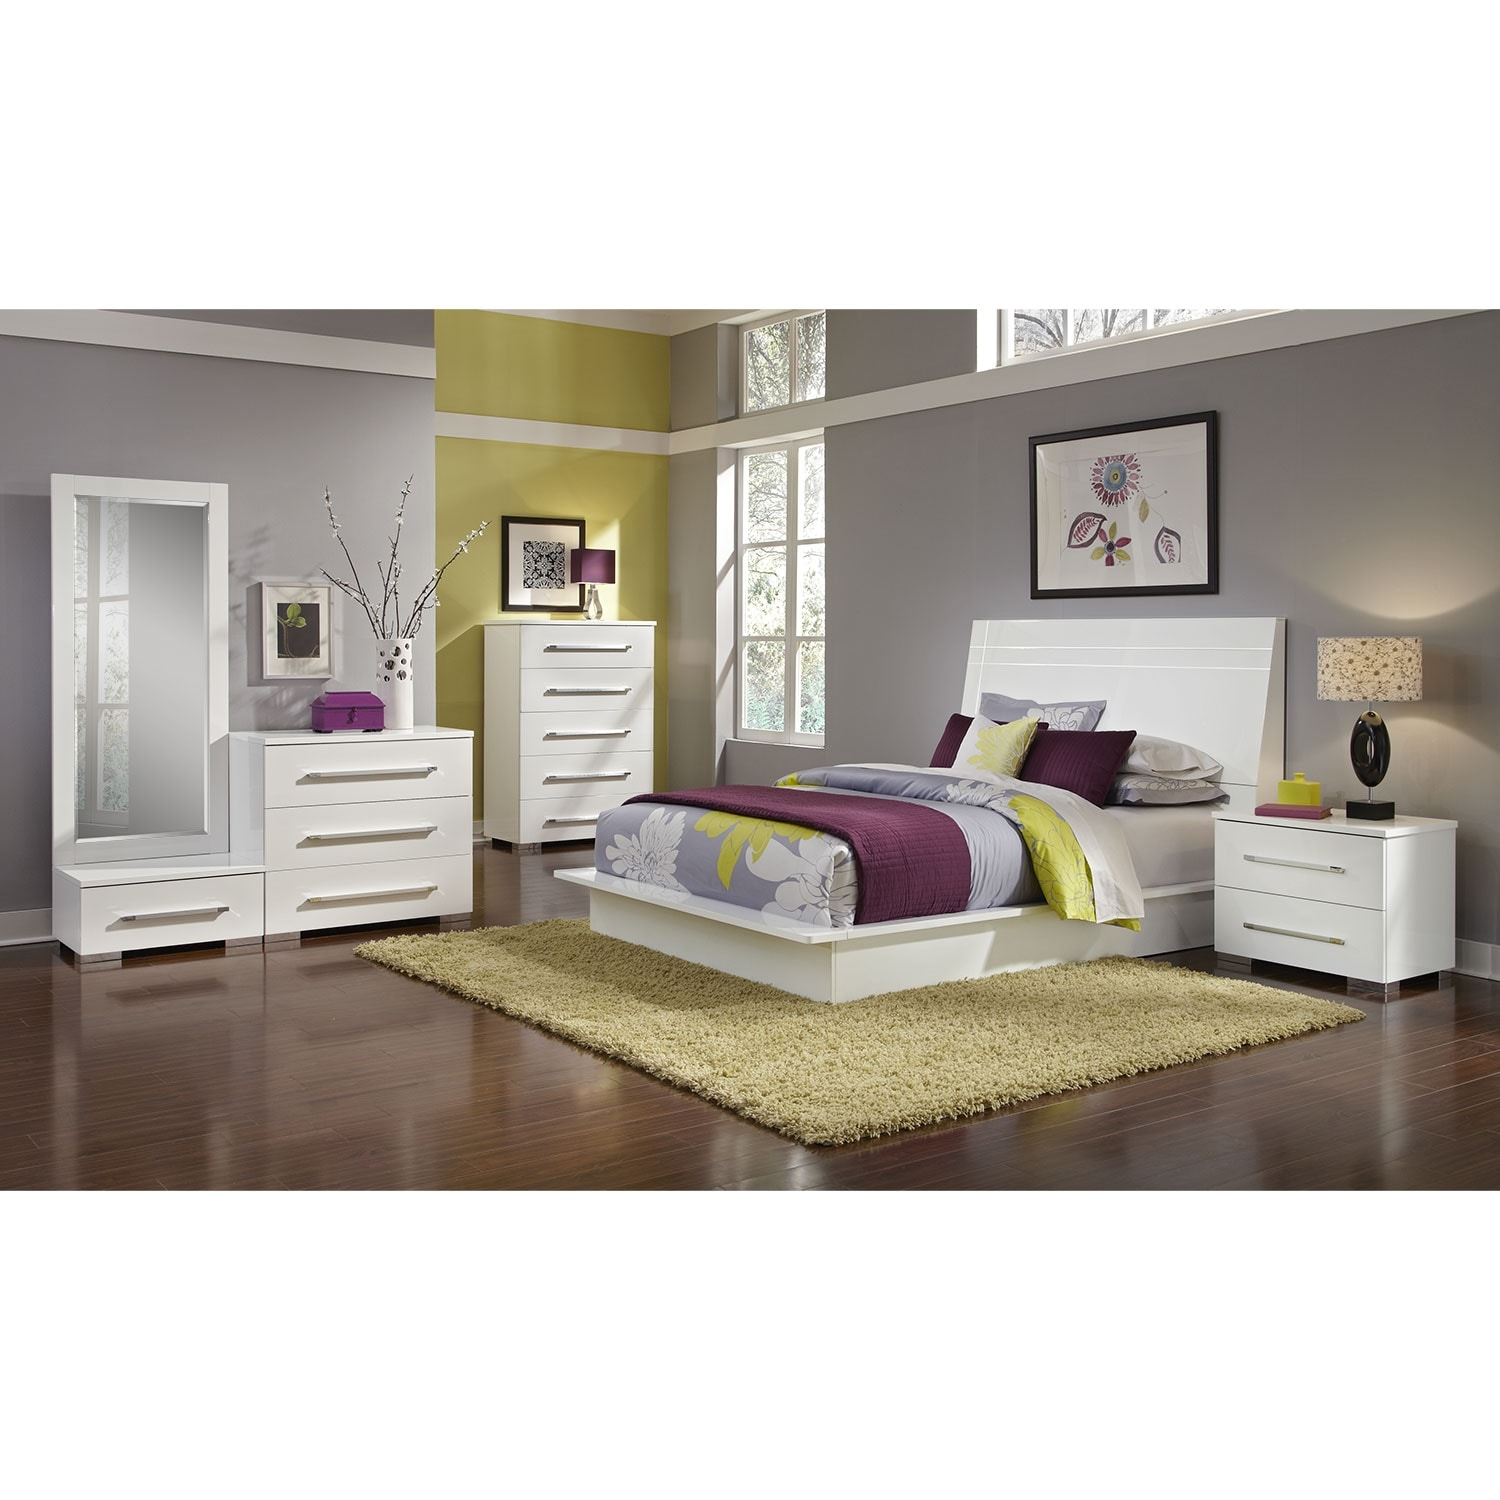 Bedroom Furniture - Dimora 7-Piece Queen Panel Bedroom Set - White